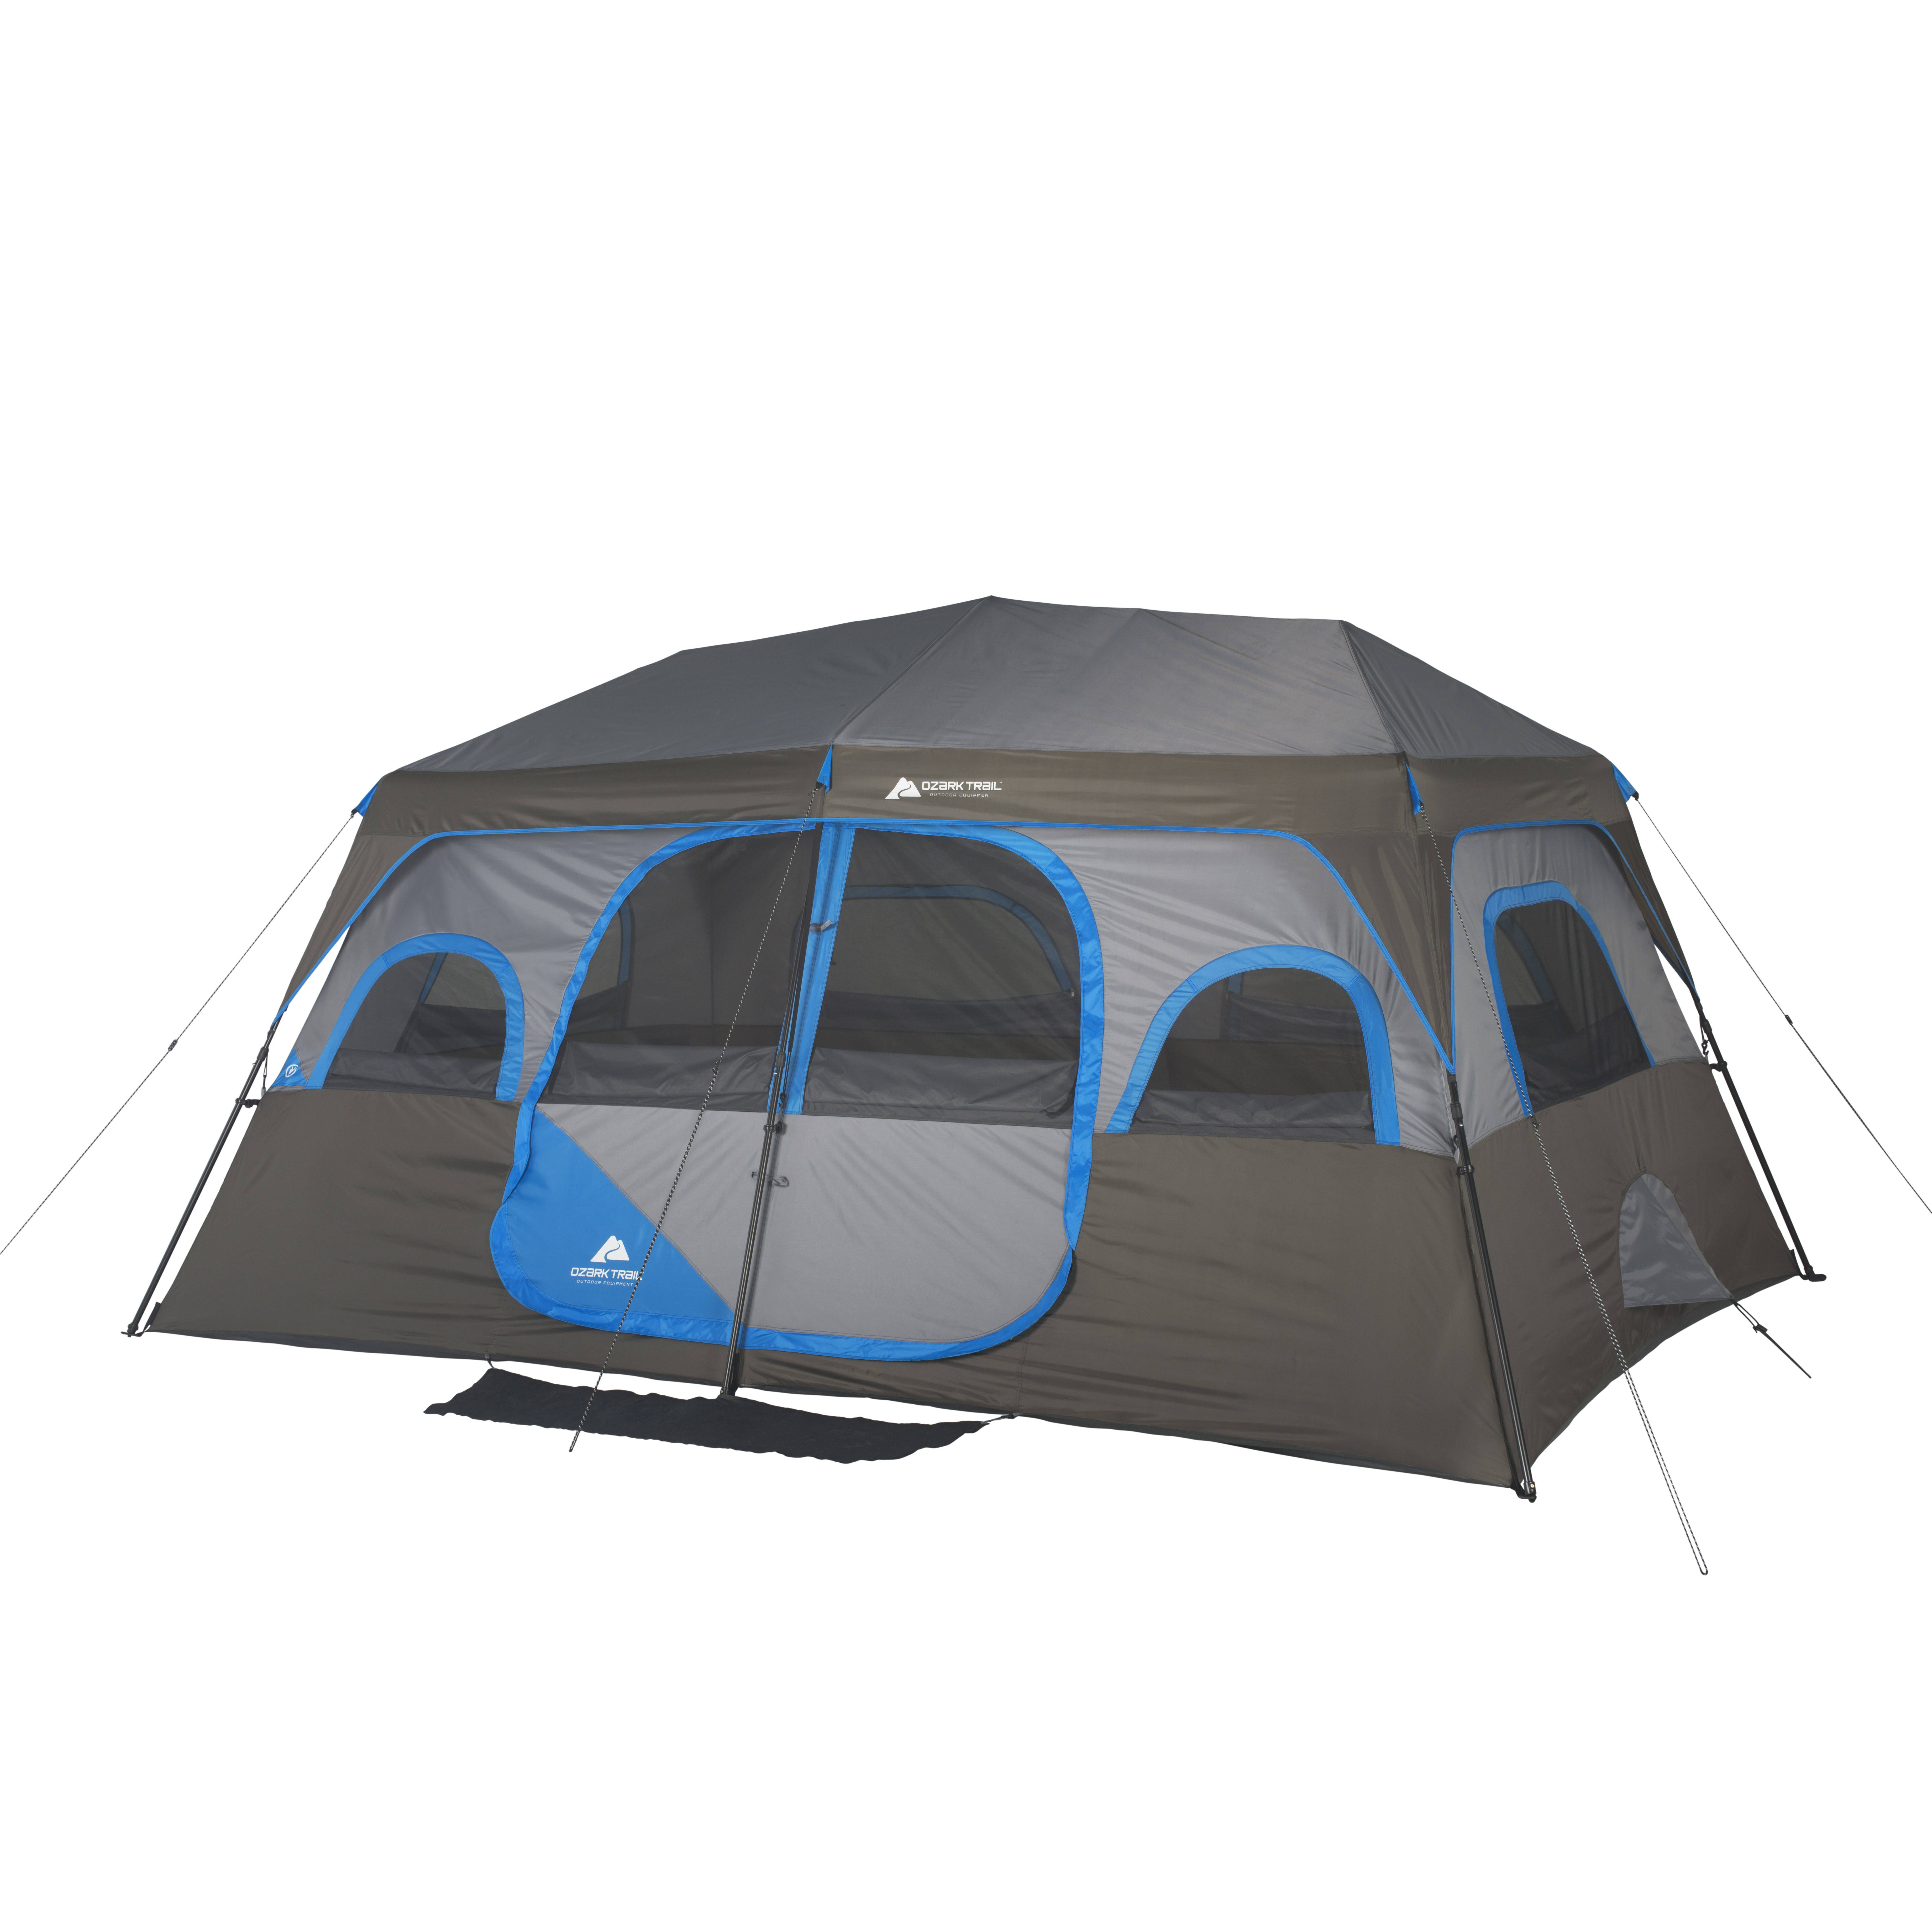 Ozark Trail 16 X 16 Instant Cabin Tent Sleeps 12 Walmart Com Cabin Tent Family Tent Camping Best Tents For Camping